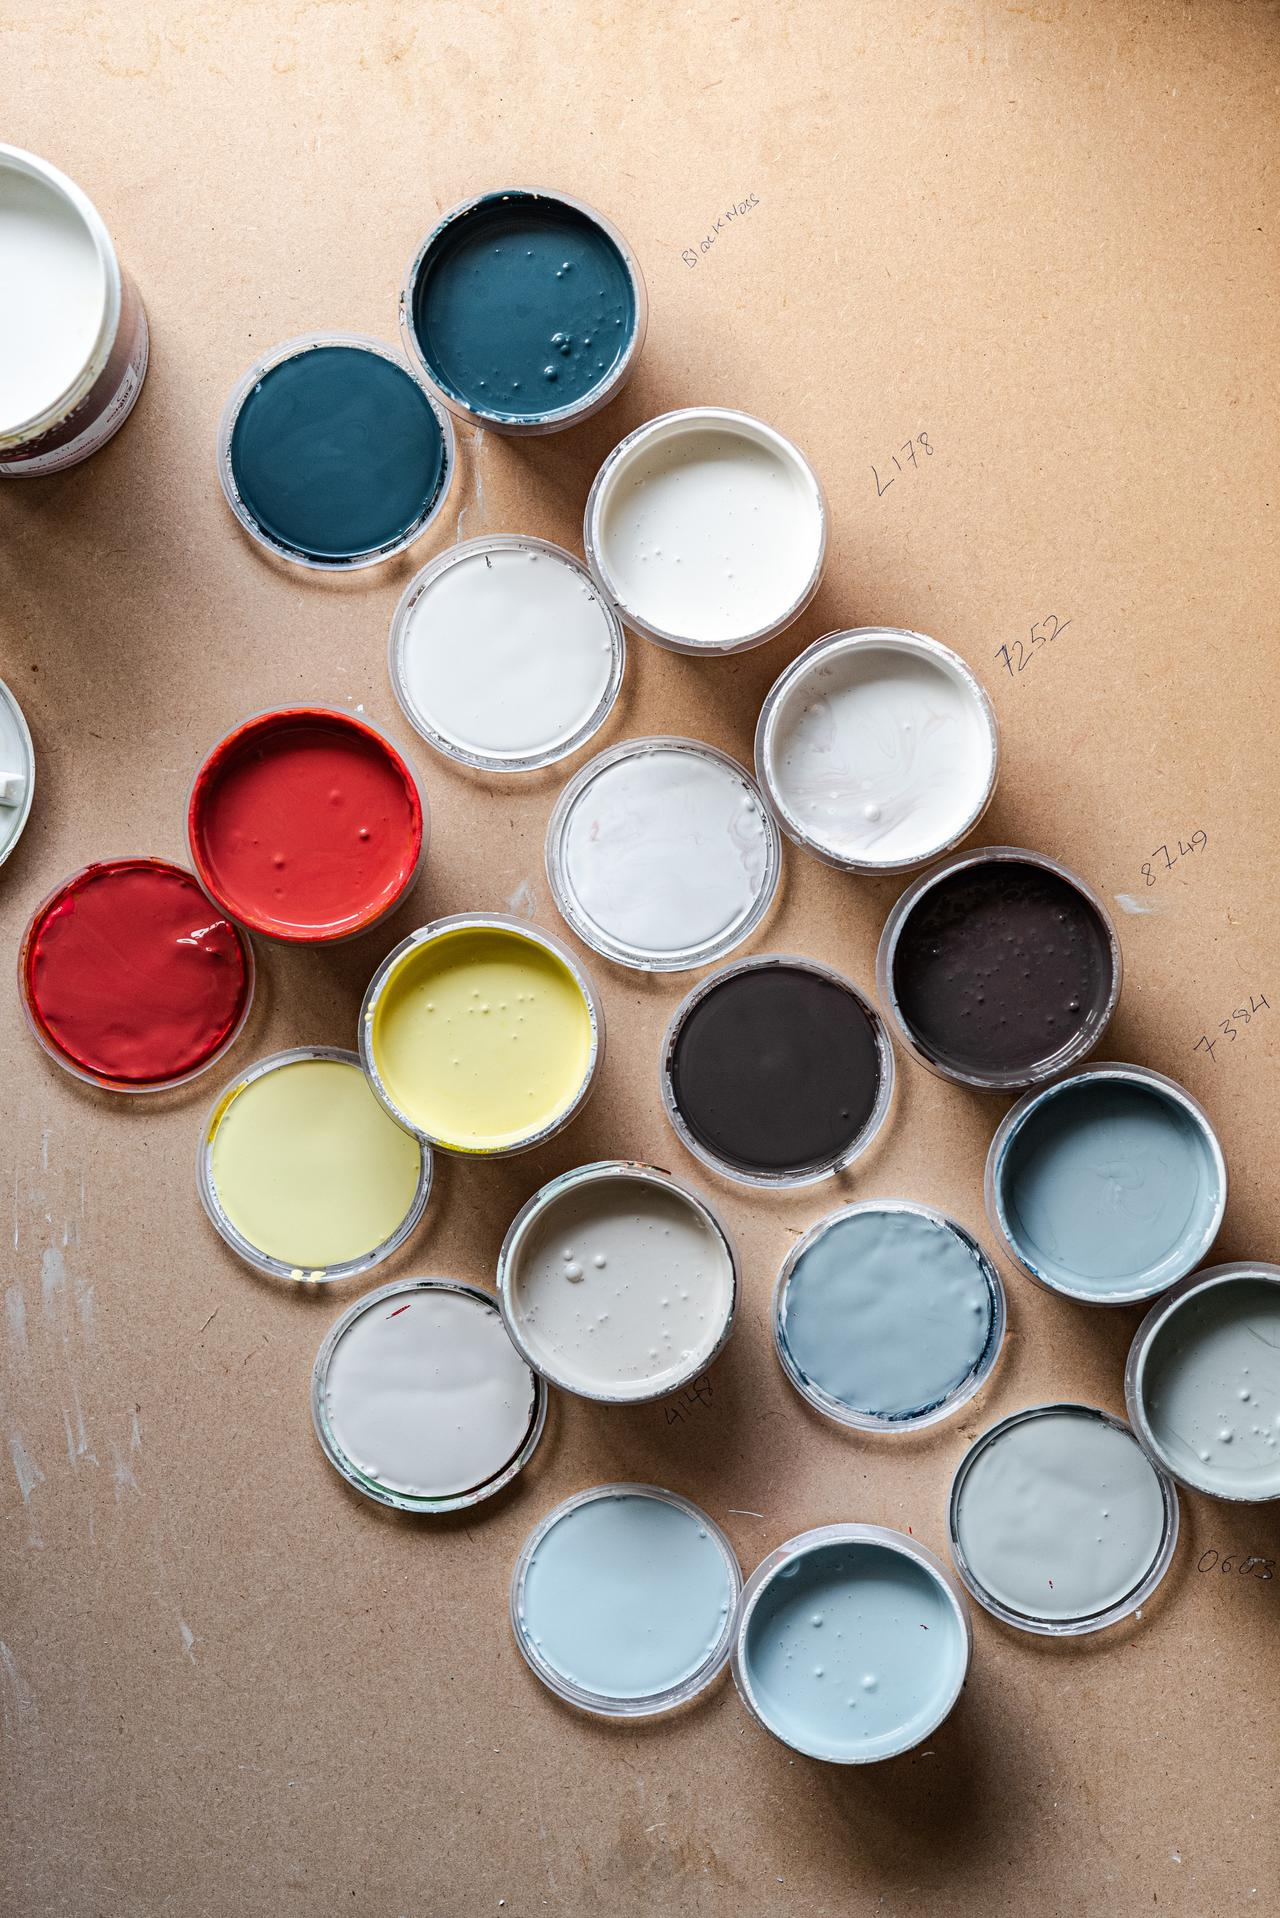 A array of different wall sample paints for testing.